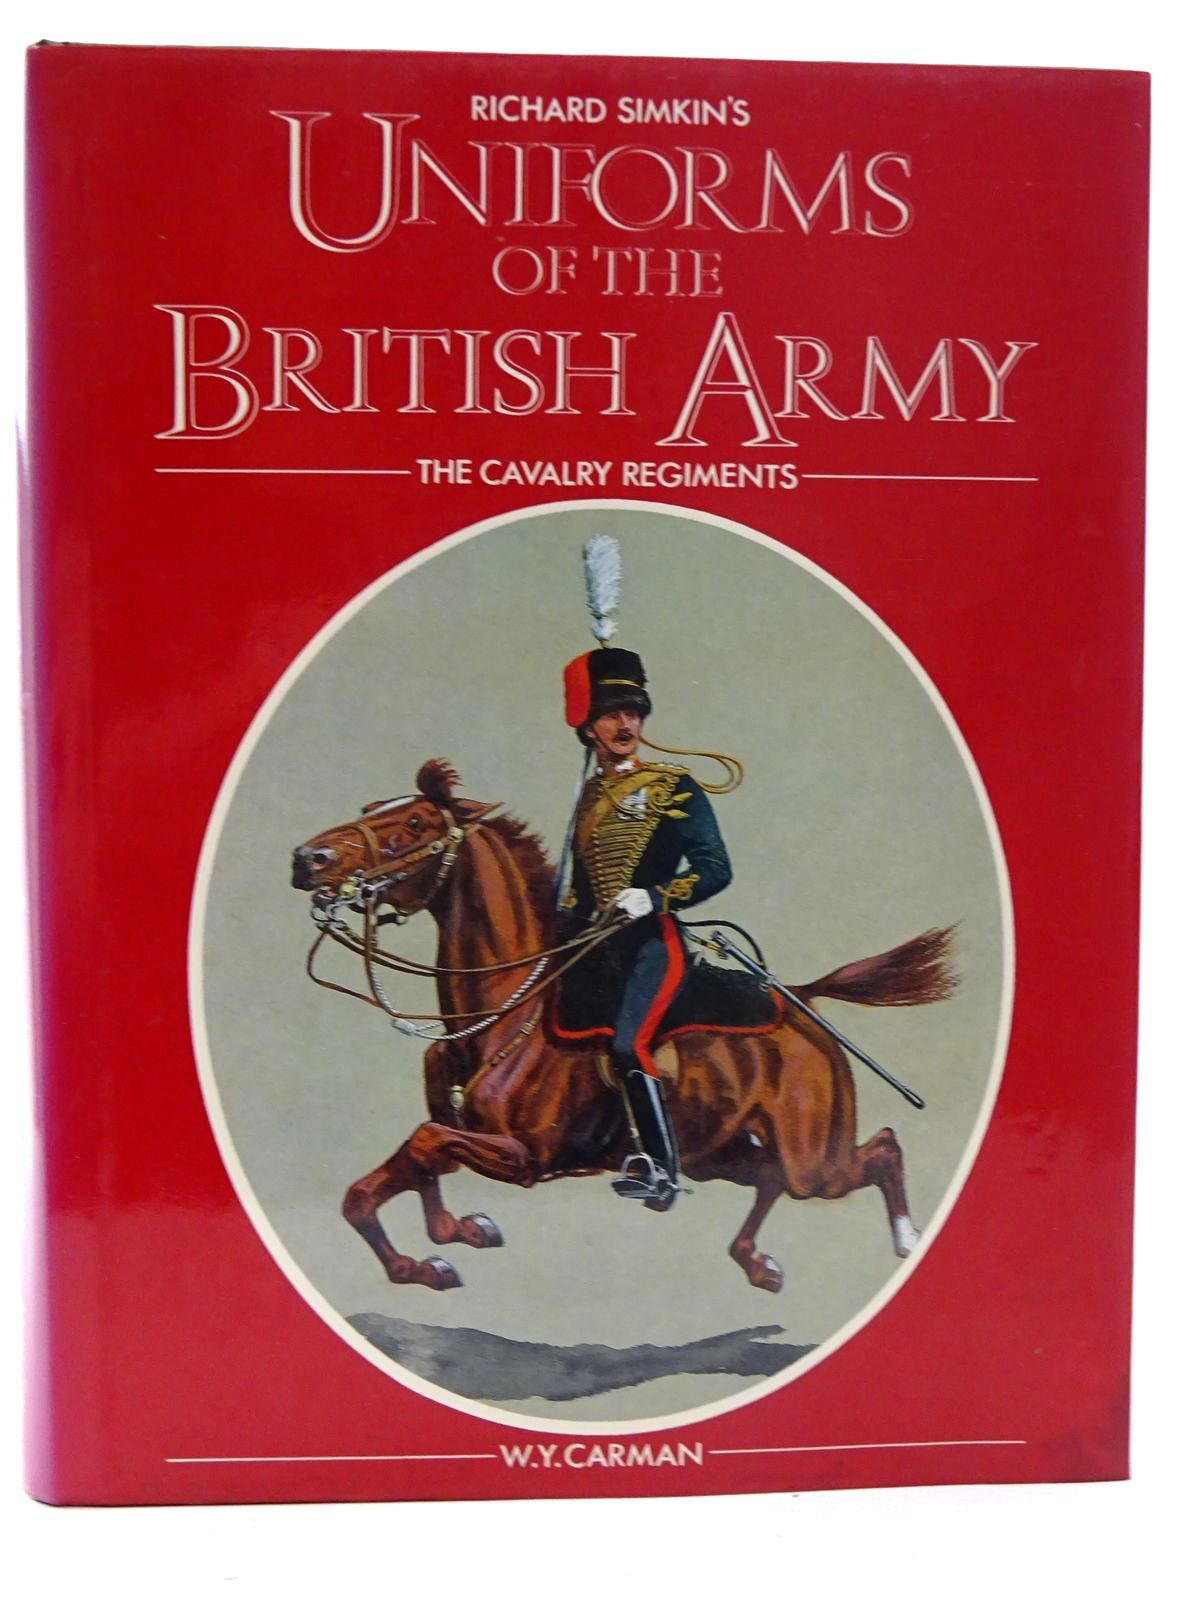 Photo of UNIFORMS OF THE BRITISH ARMY THE CAVALRY REGIMENTS written by Carman, William Y. illustrated by Simkin, Richard published by Webb & Bower (STOCK CODE: 2126084)  for sale by Stella & Rose's Books